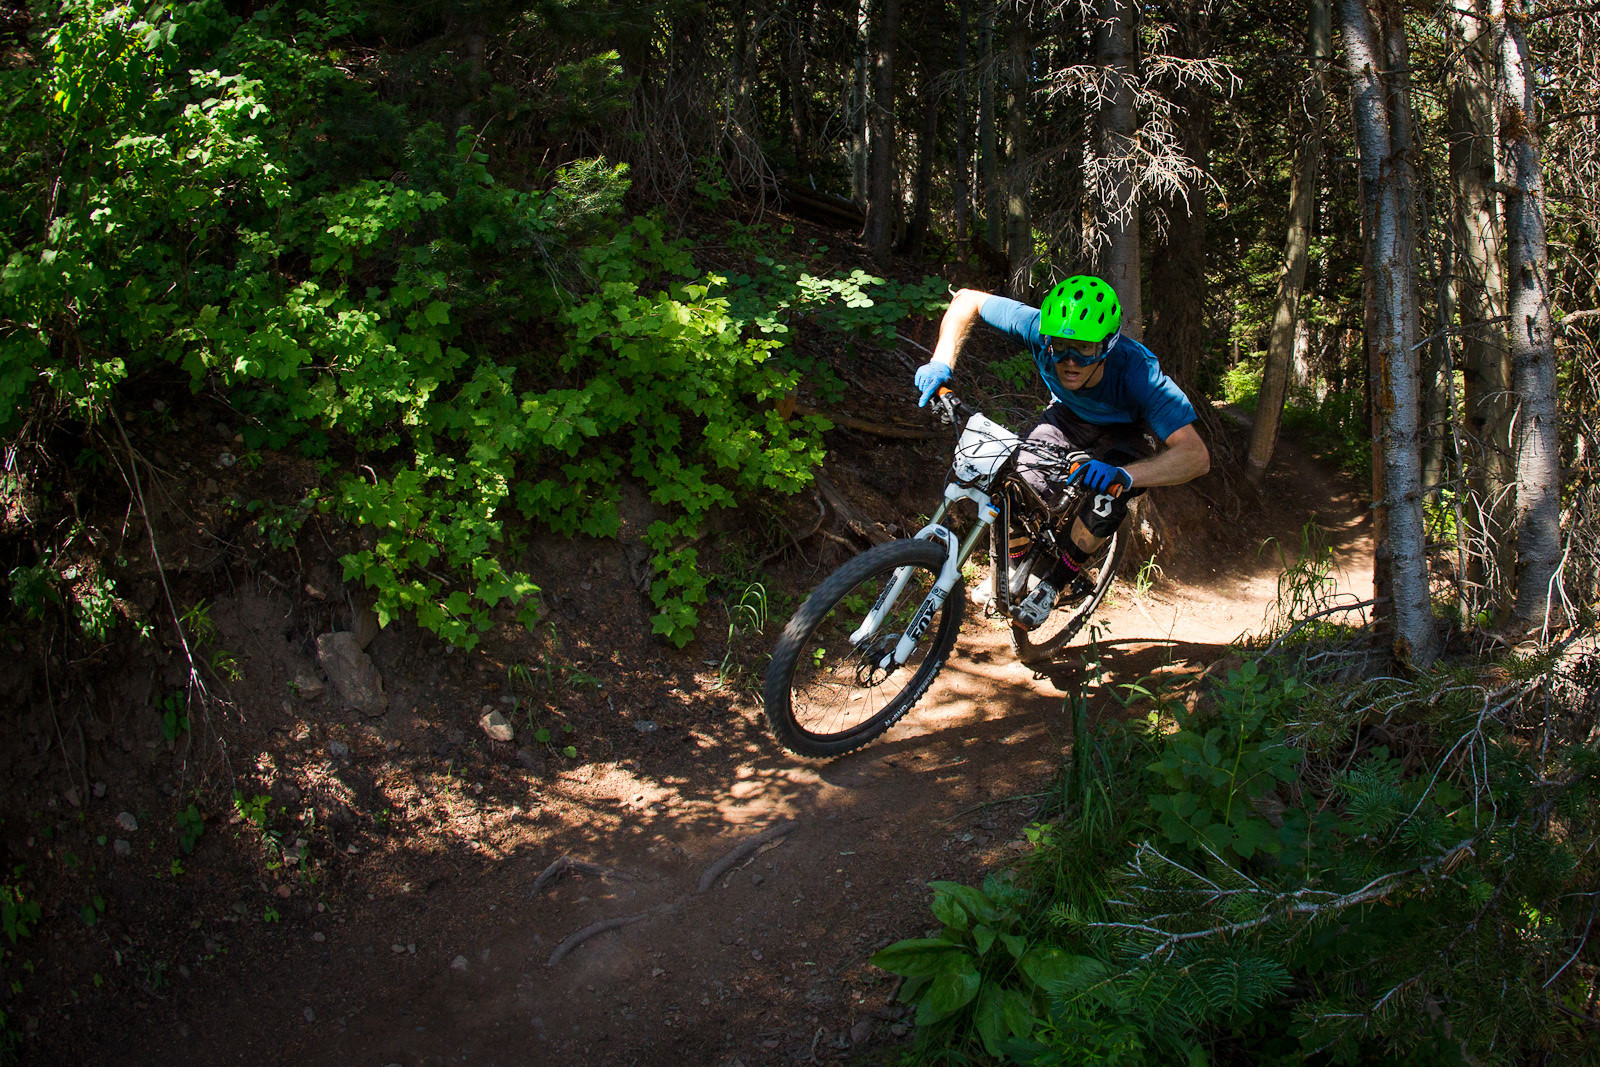 Spencer Powlison, Bell Enduro Cup at Canyons Resort - Race Report, Photos and Video: Bell Enduro Cup at Canyons Resort - Mountain Biking Pictures - Vital MTB